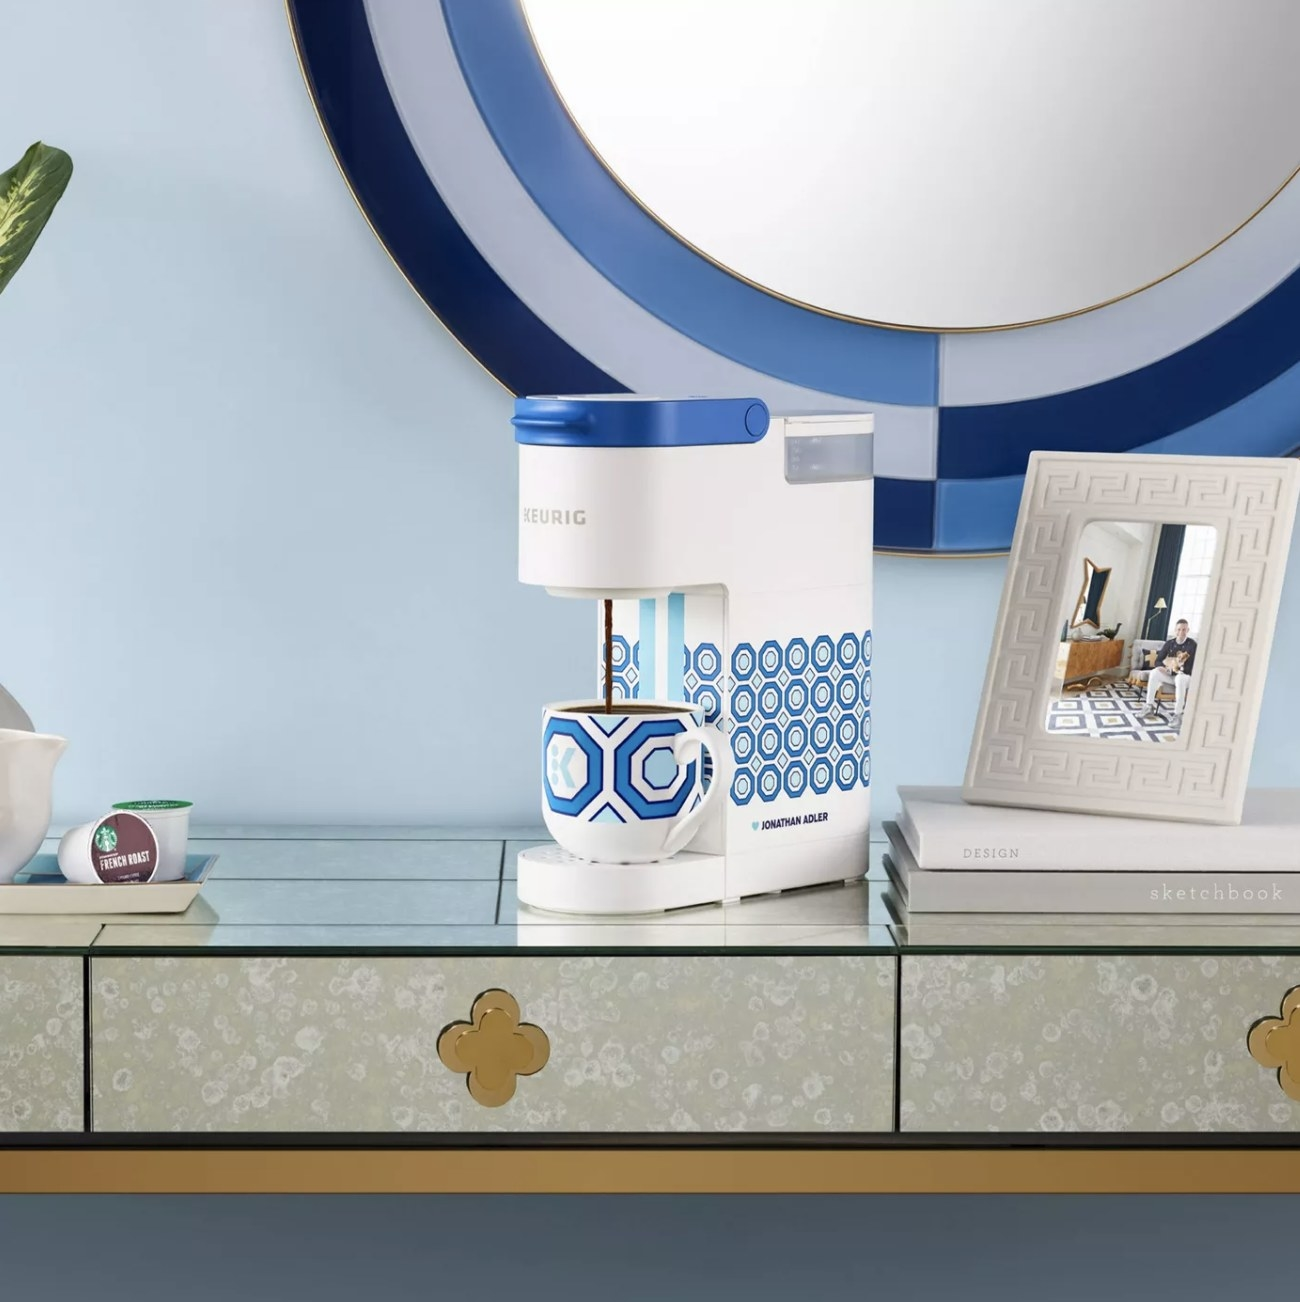 The white and blue patterned Keurig mini